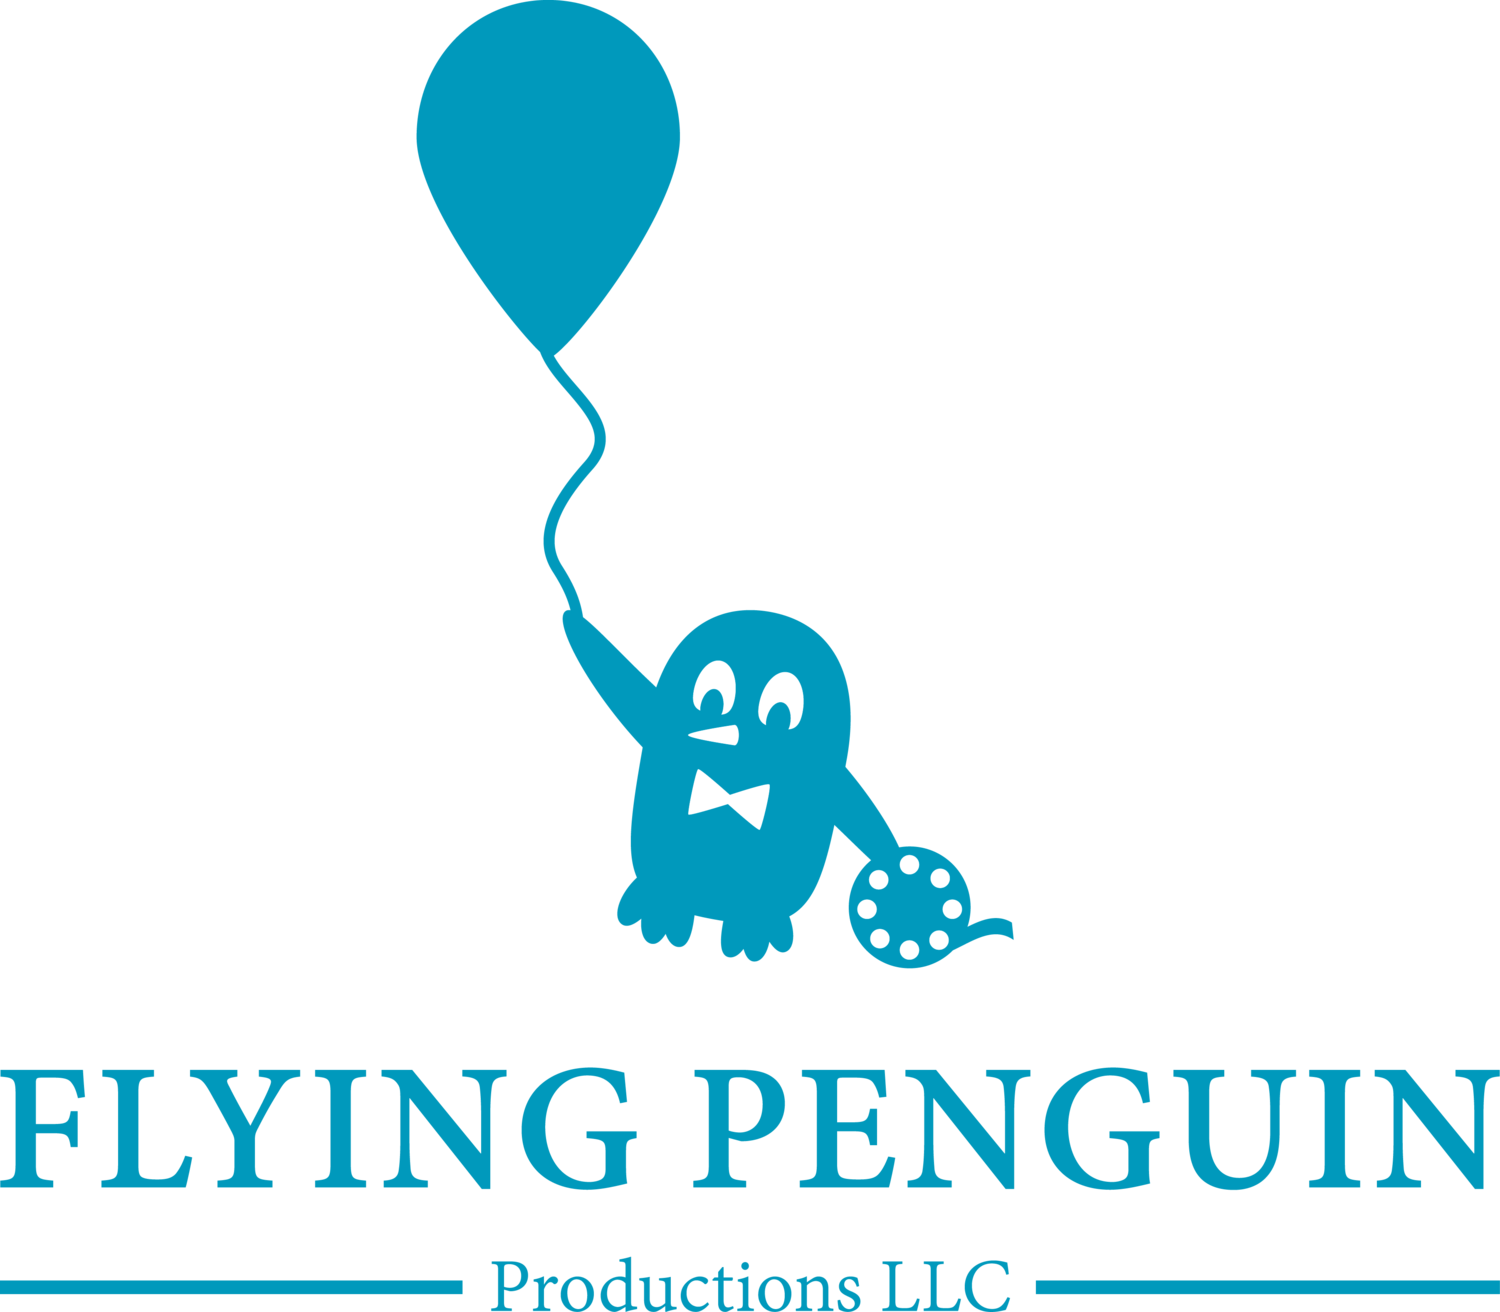 Flying Penguin Productions LLC